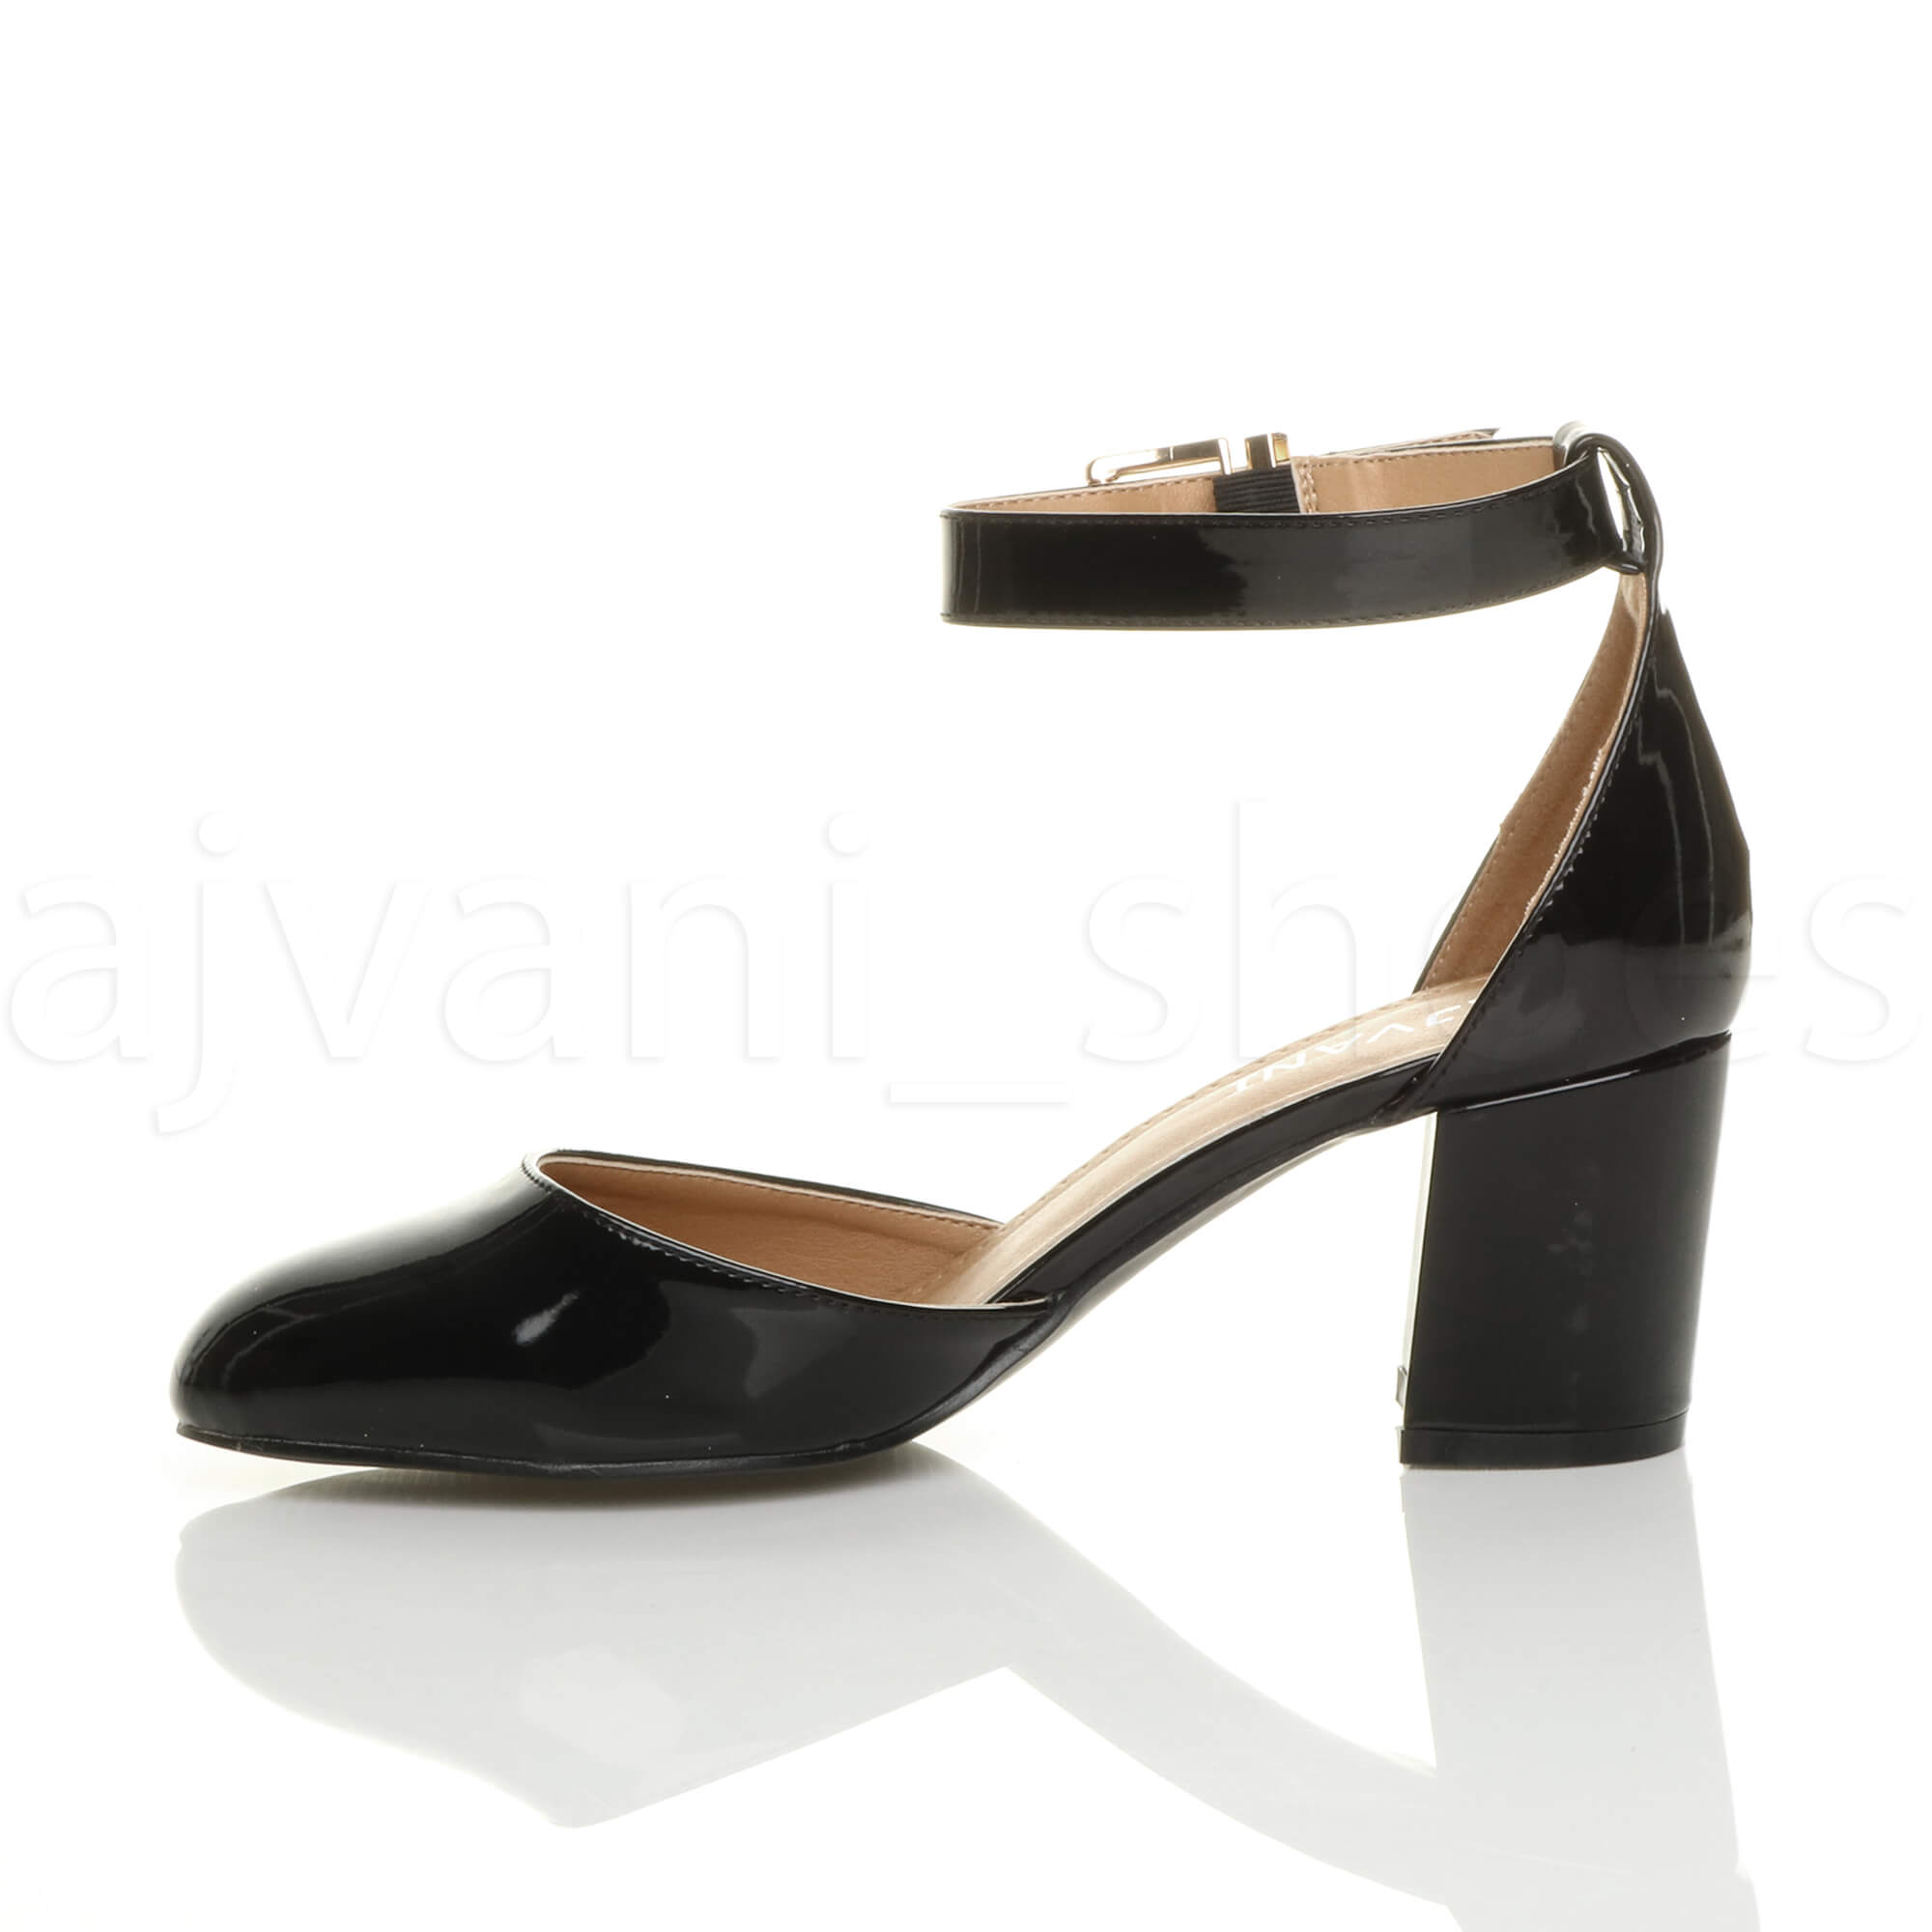 WOMENS-LADIES-LOW-MID-BLOCK-HEEL-ANKLE-STRAP-MARY-JANE-COURT-SHOES-SANDALS-SIZE thumbnail 12